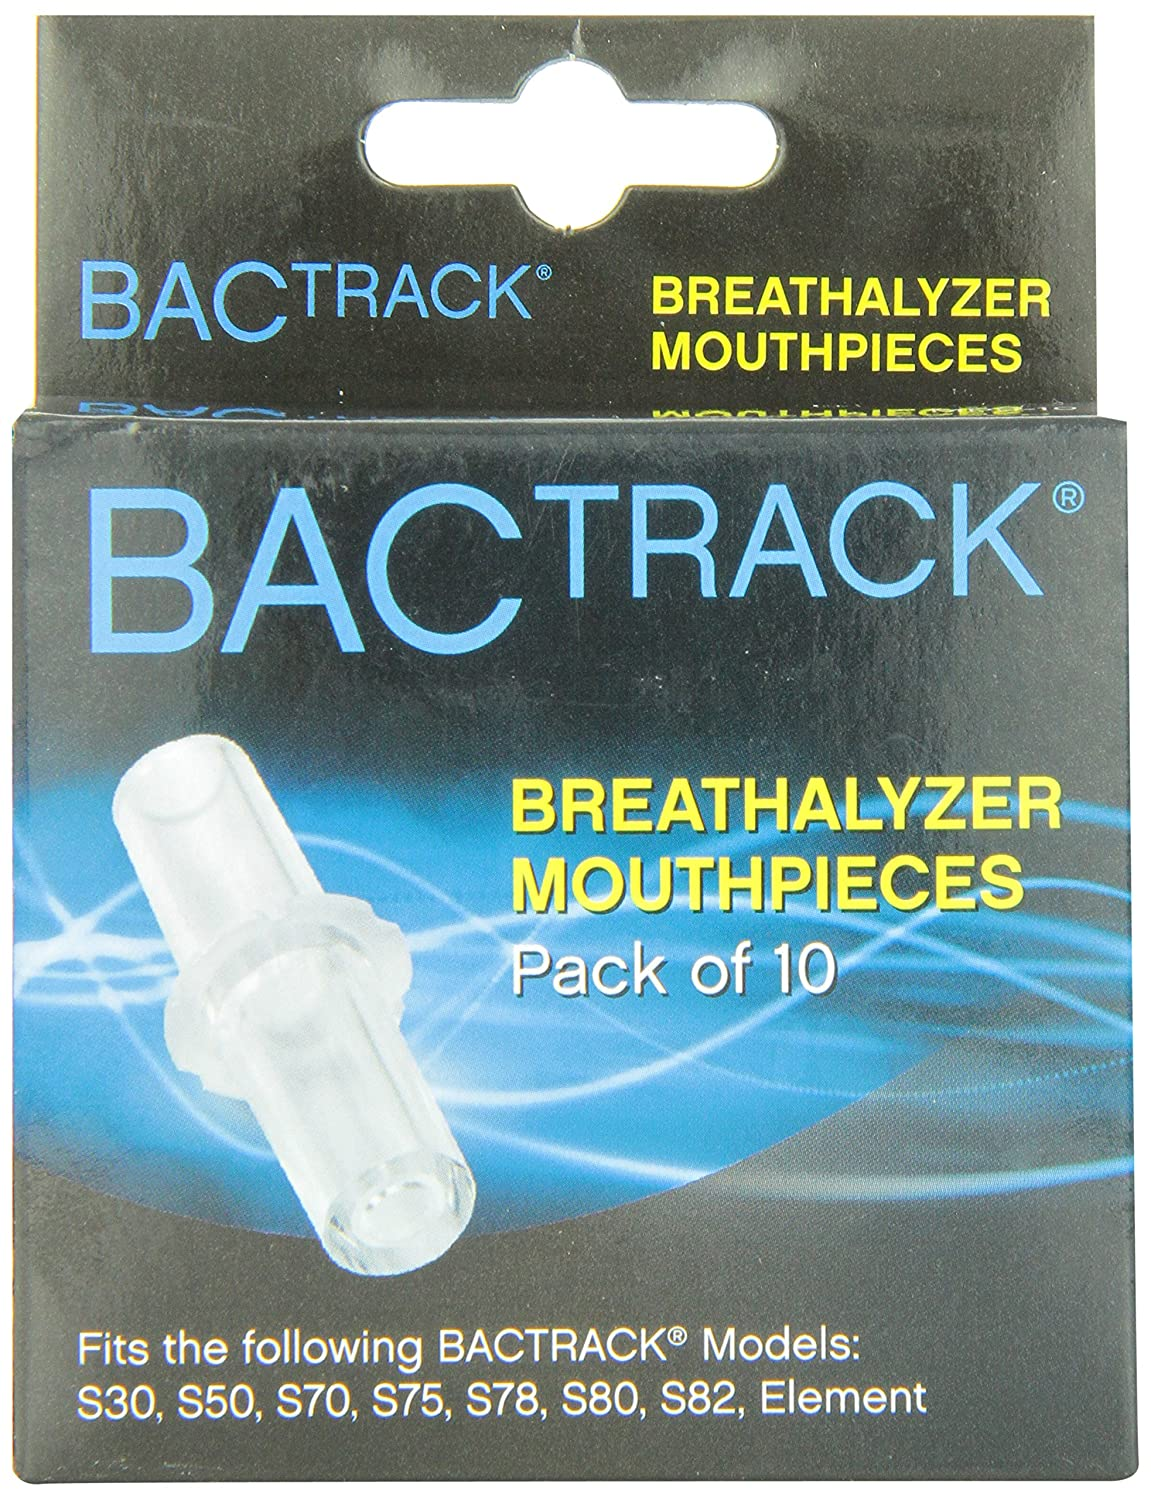 Amazon Com Bactrack Breathalyzer Mouthpieces Pack Of 10 Health